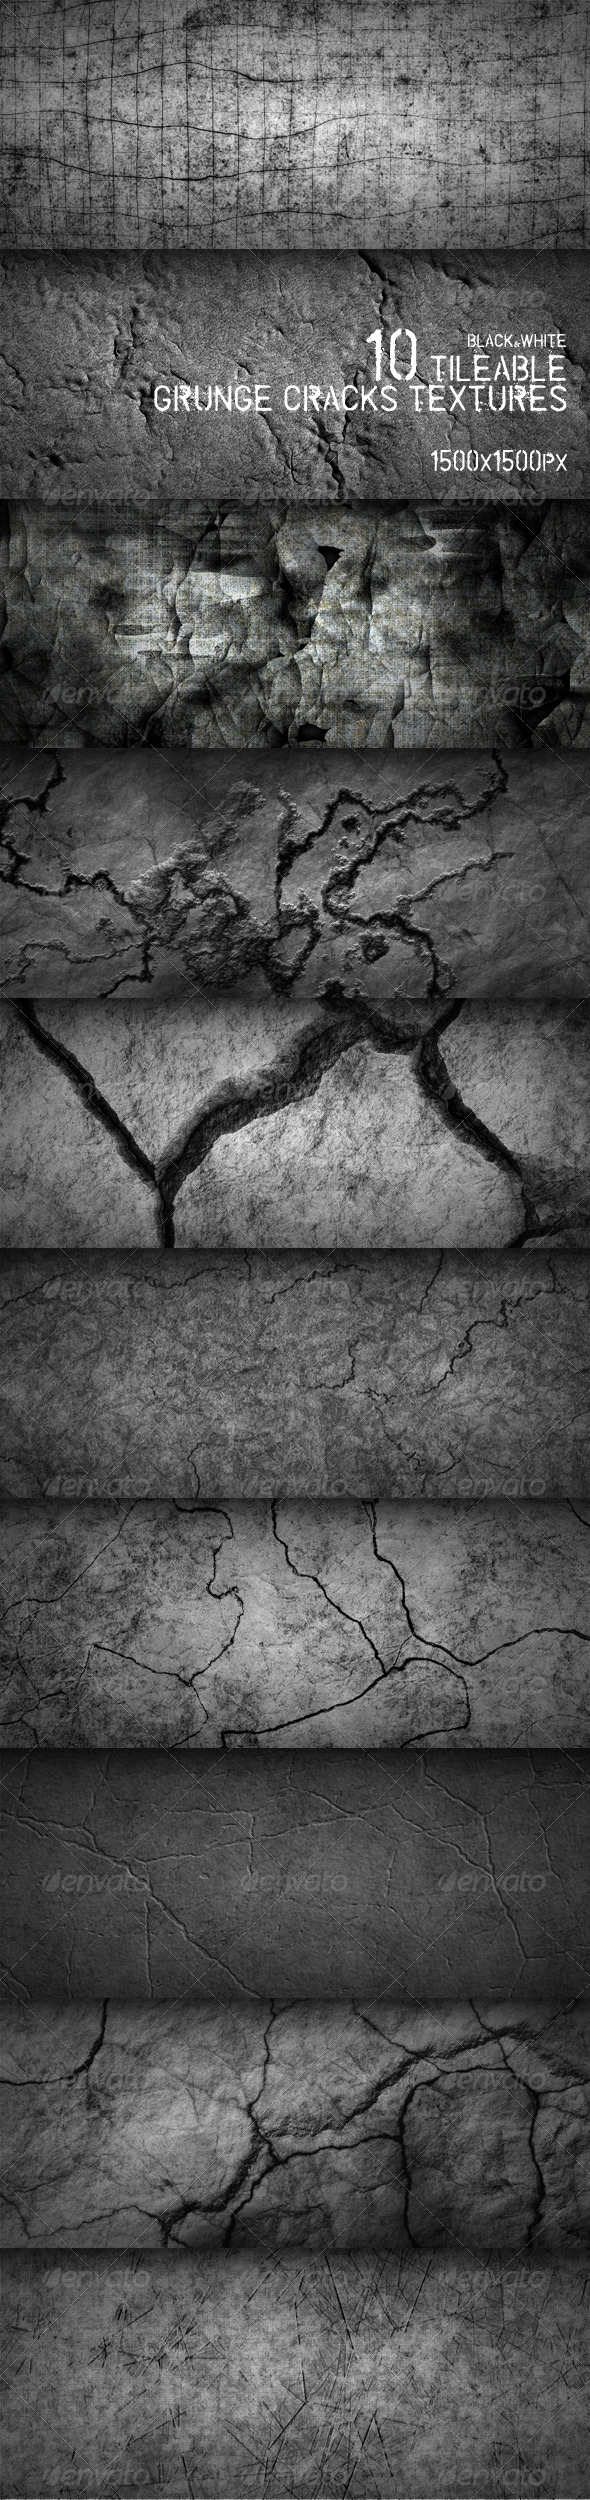 GraphicRiver 10 Tileable Grunge Cracks Textures 161557